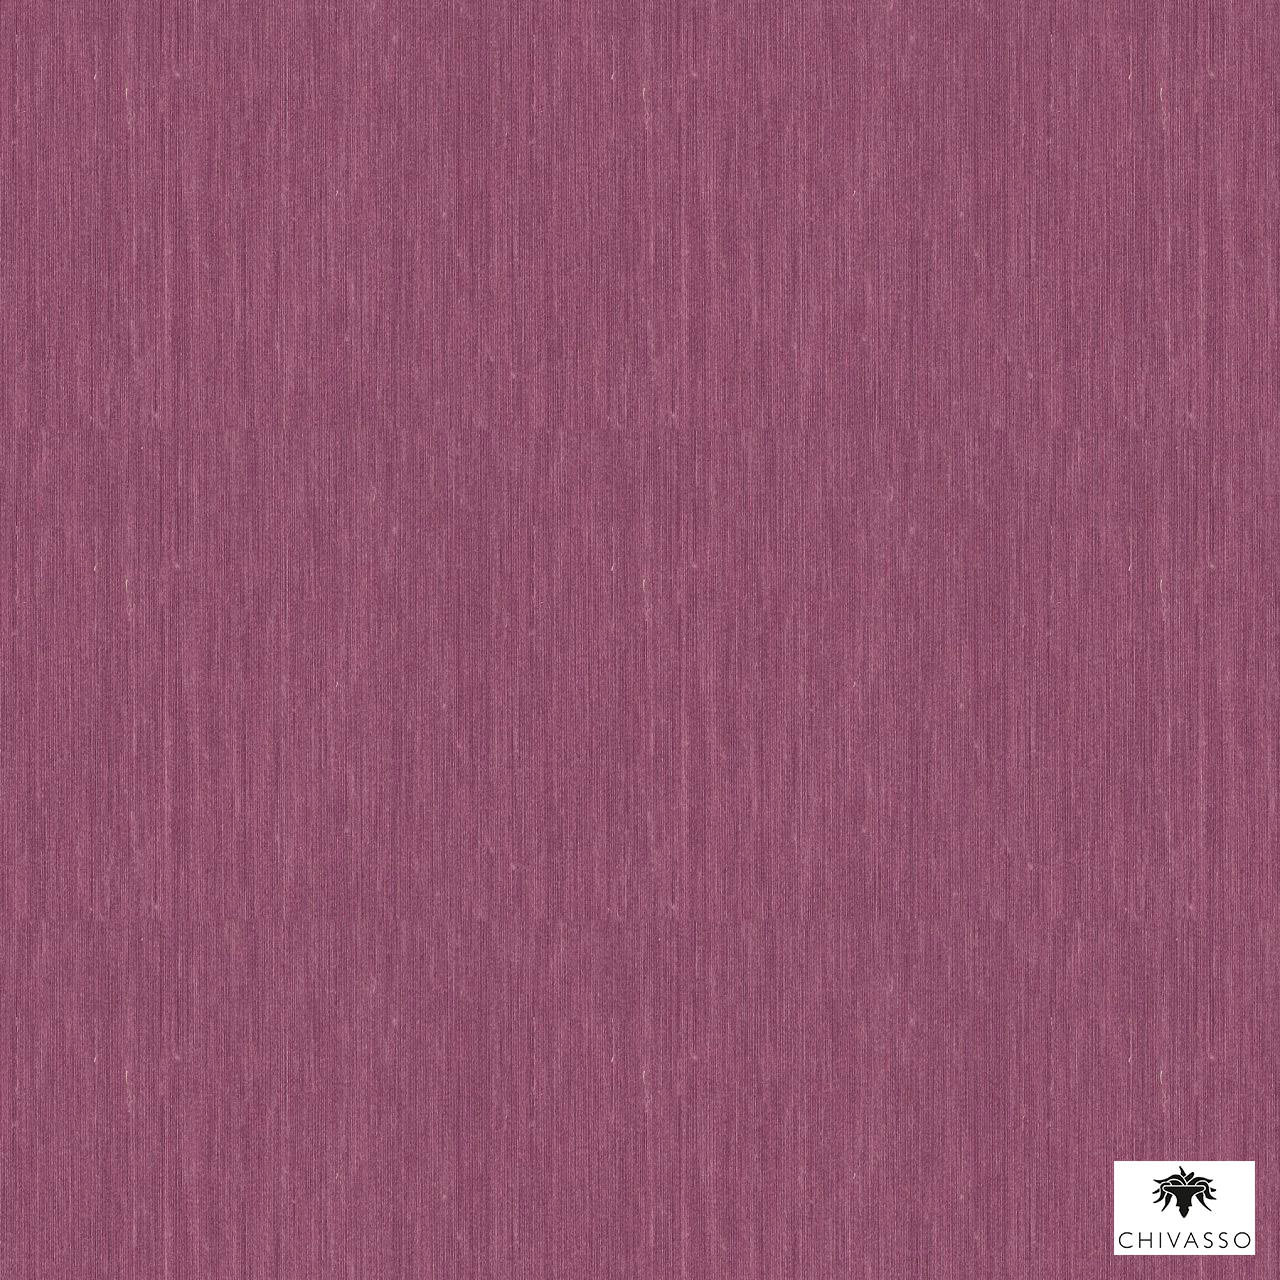 Chivasso - Colour Block - Ch9112-087  | Wallpaper, Wallcovering - Plain, Pink, Purple, Domestic Use